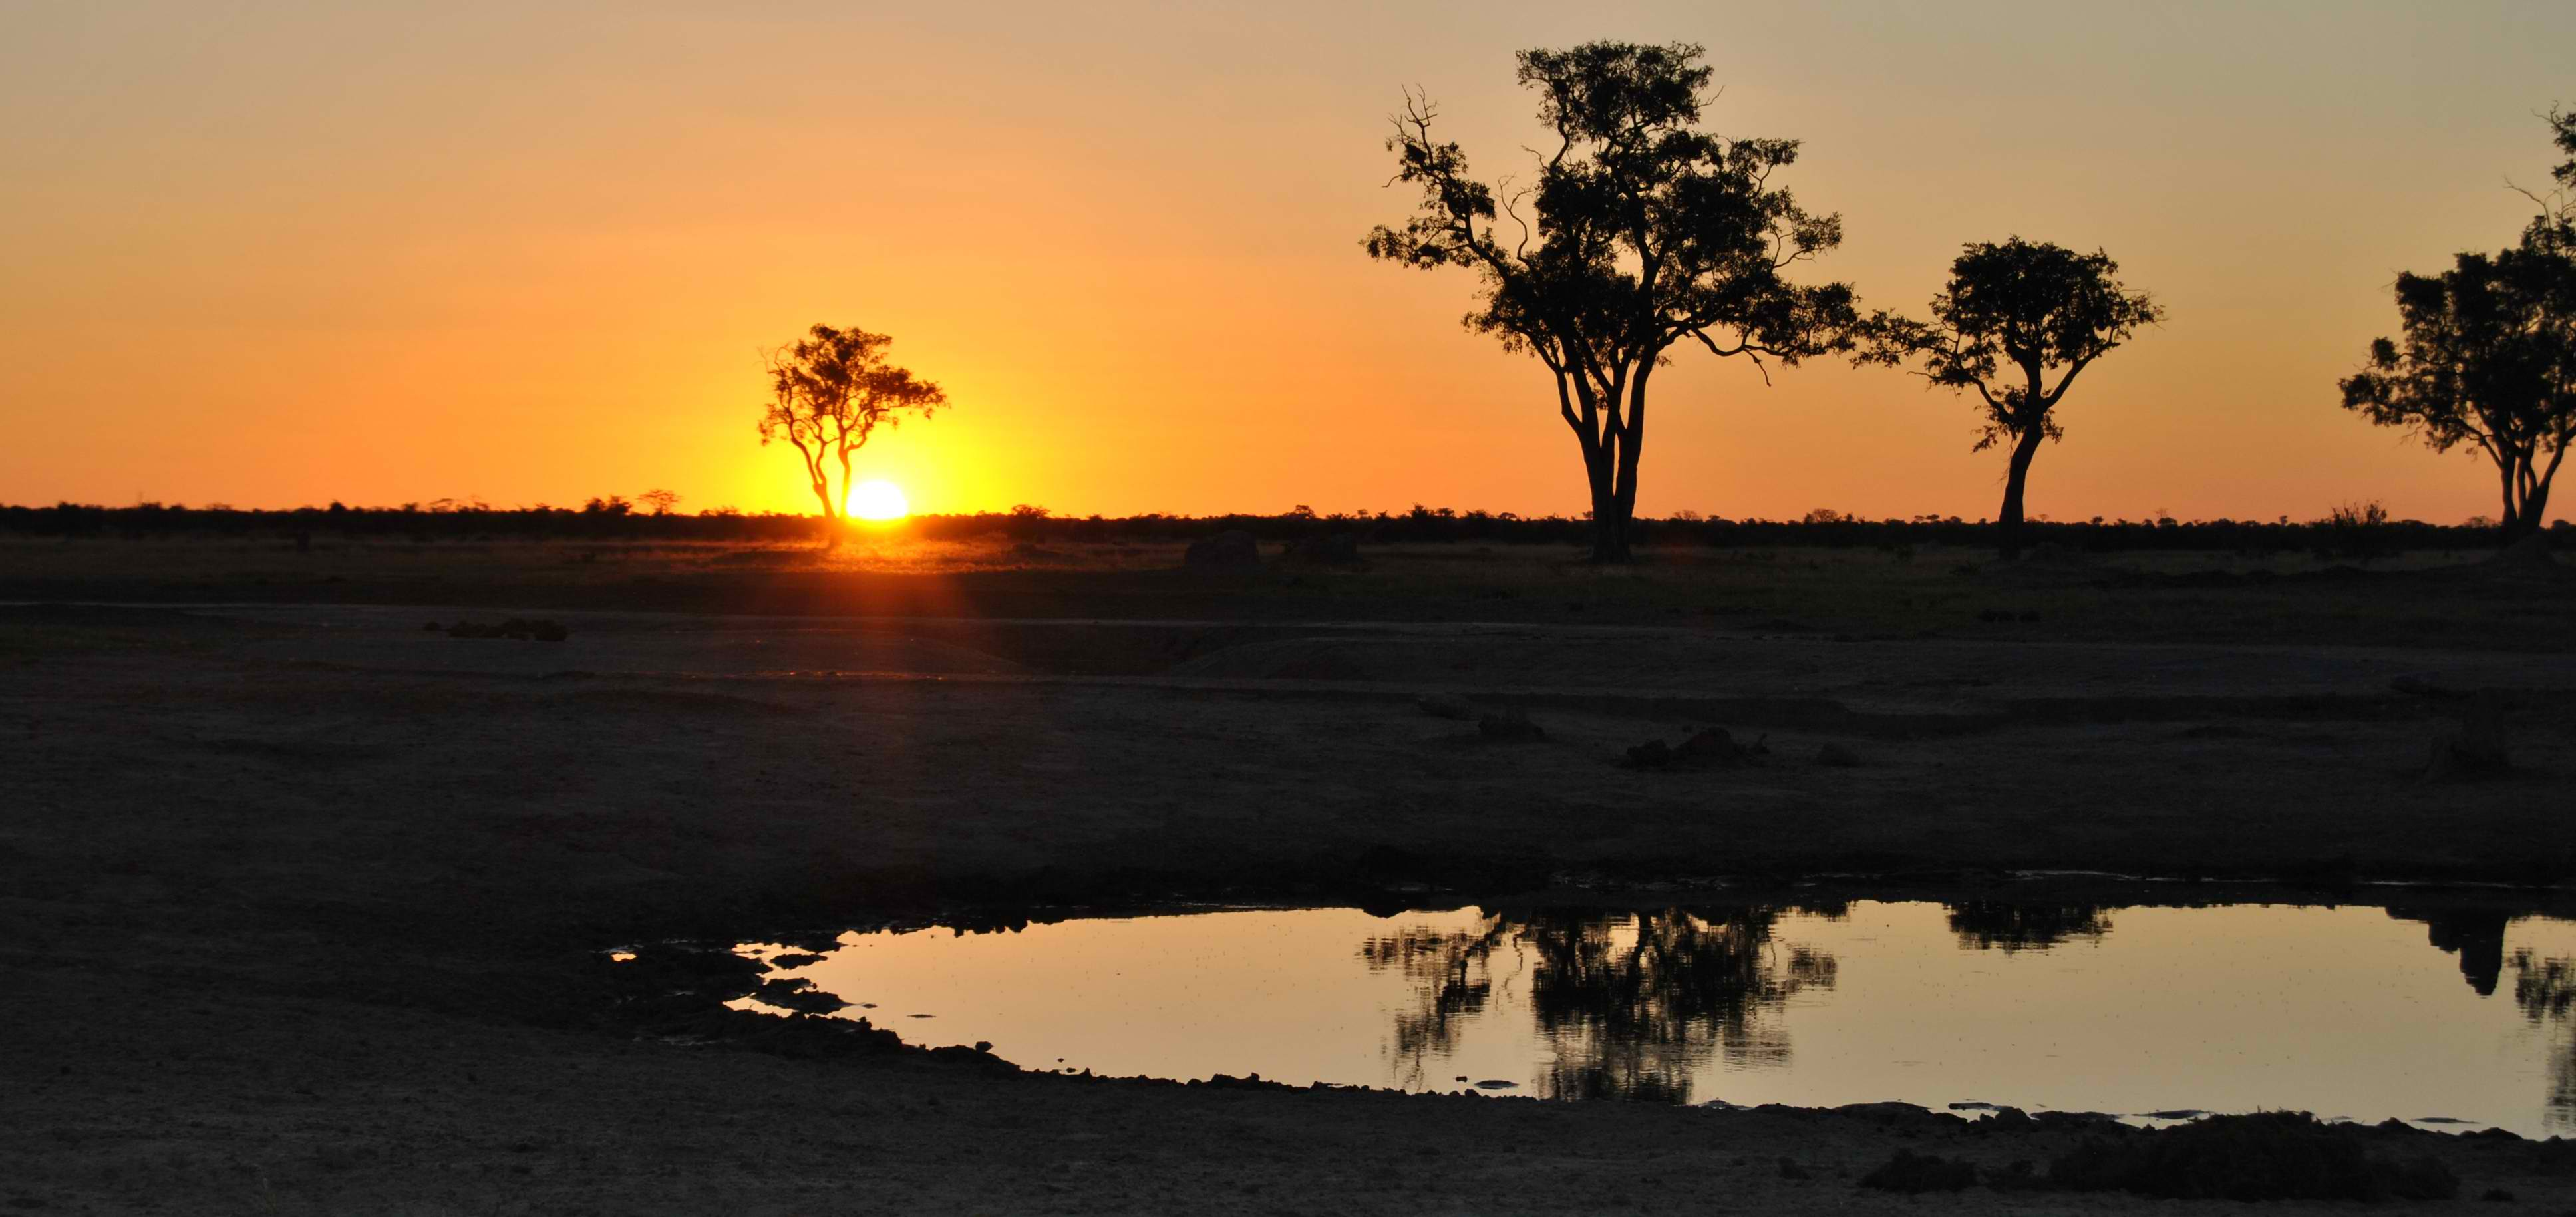 Take a look at this amazing shot of the Sauvati Sunset at afrikanblues.com blog.